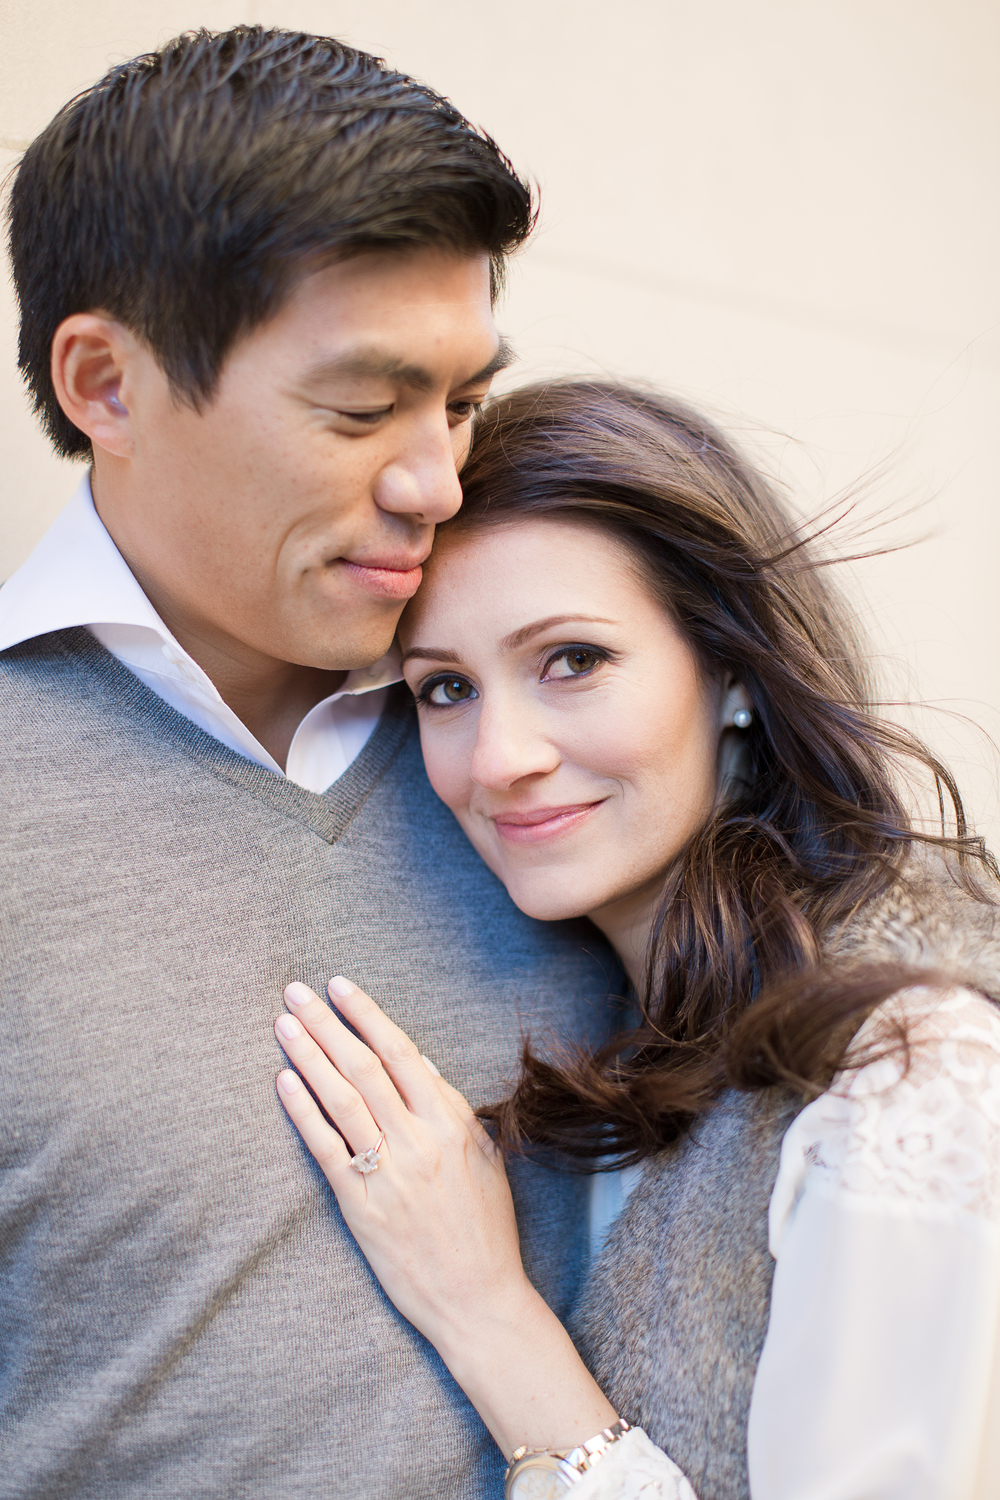 Melissa Kruse Photography - Emily + Kevin Engagement Session-104.jpg